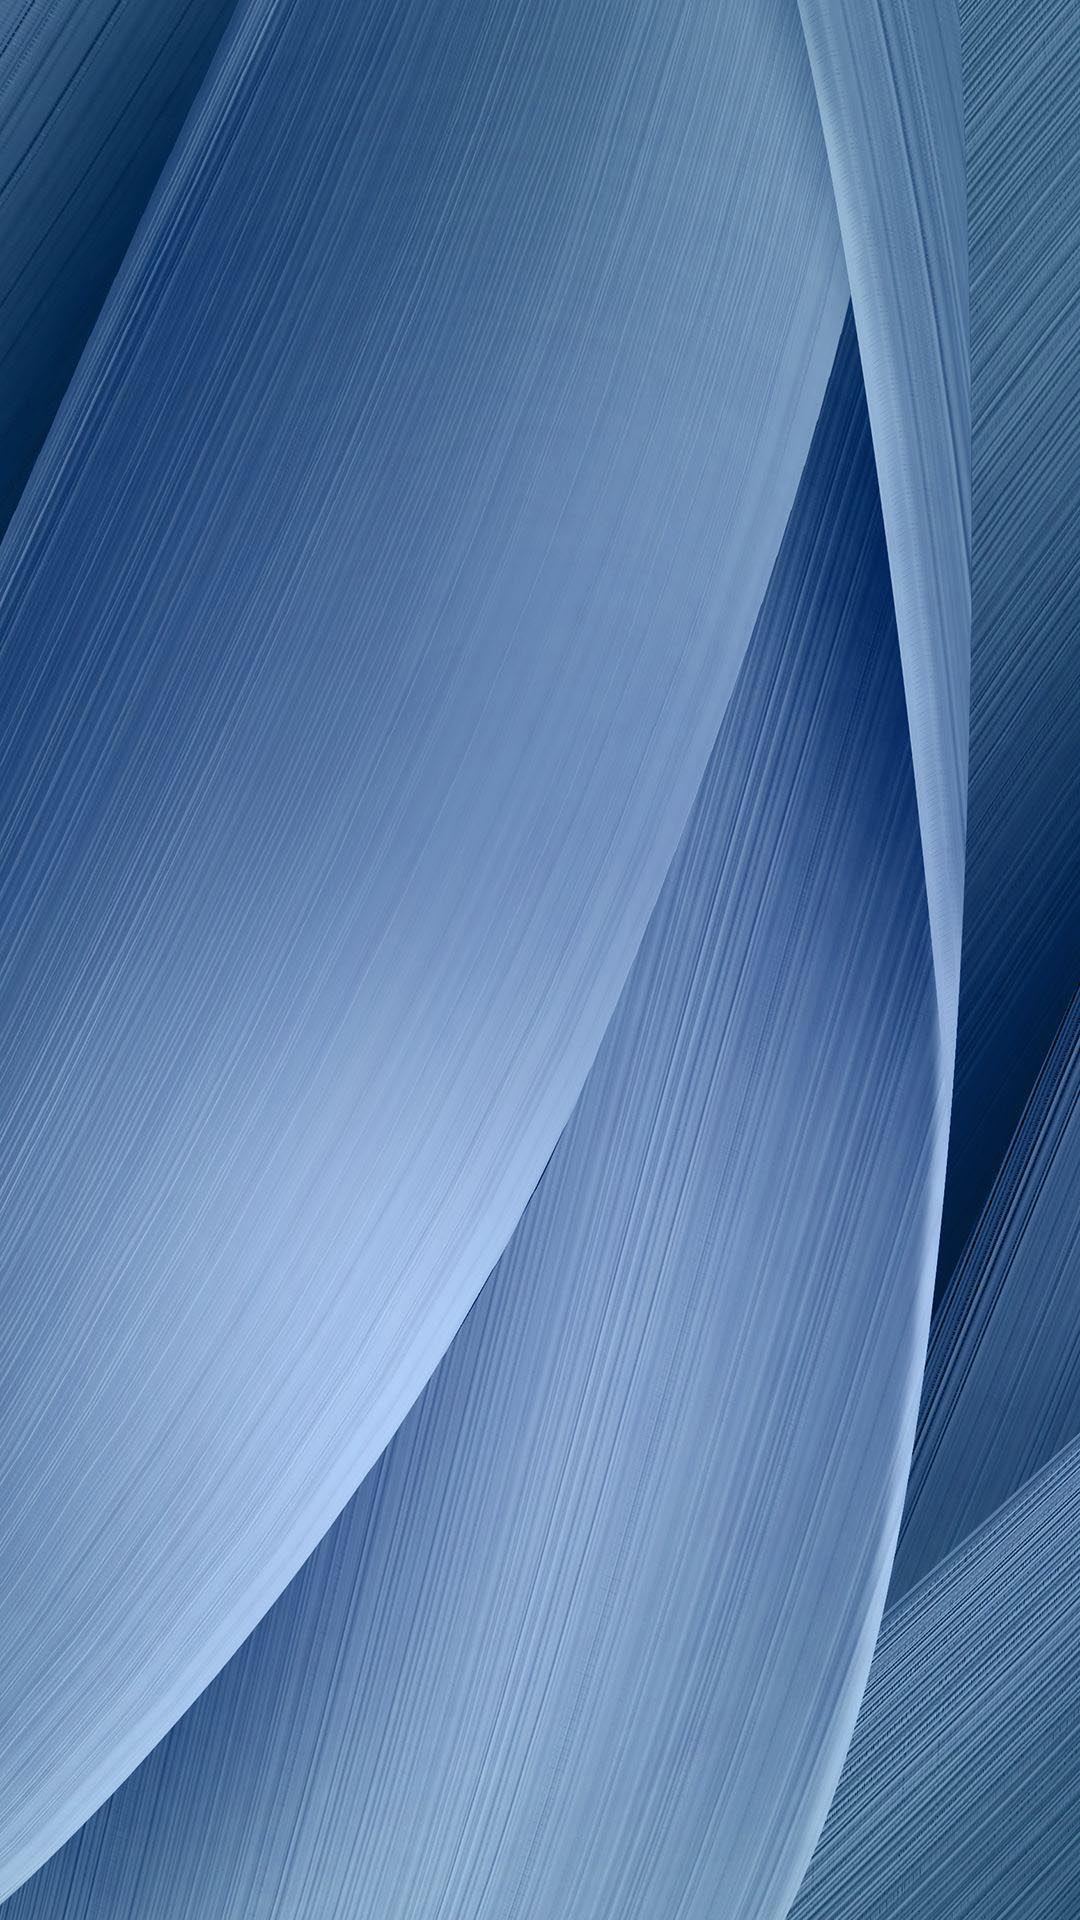 blue shapes best htc one wallpapers